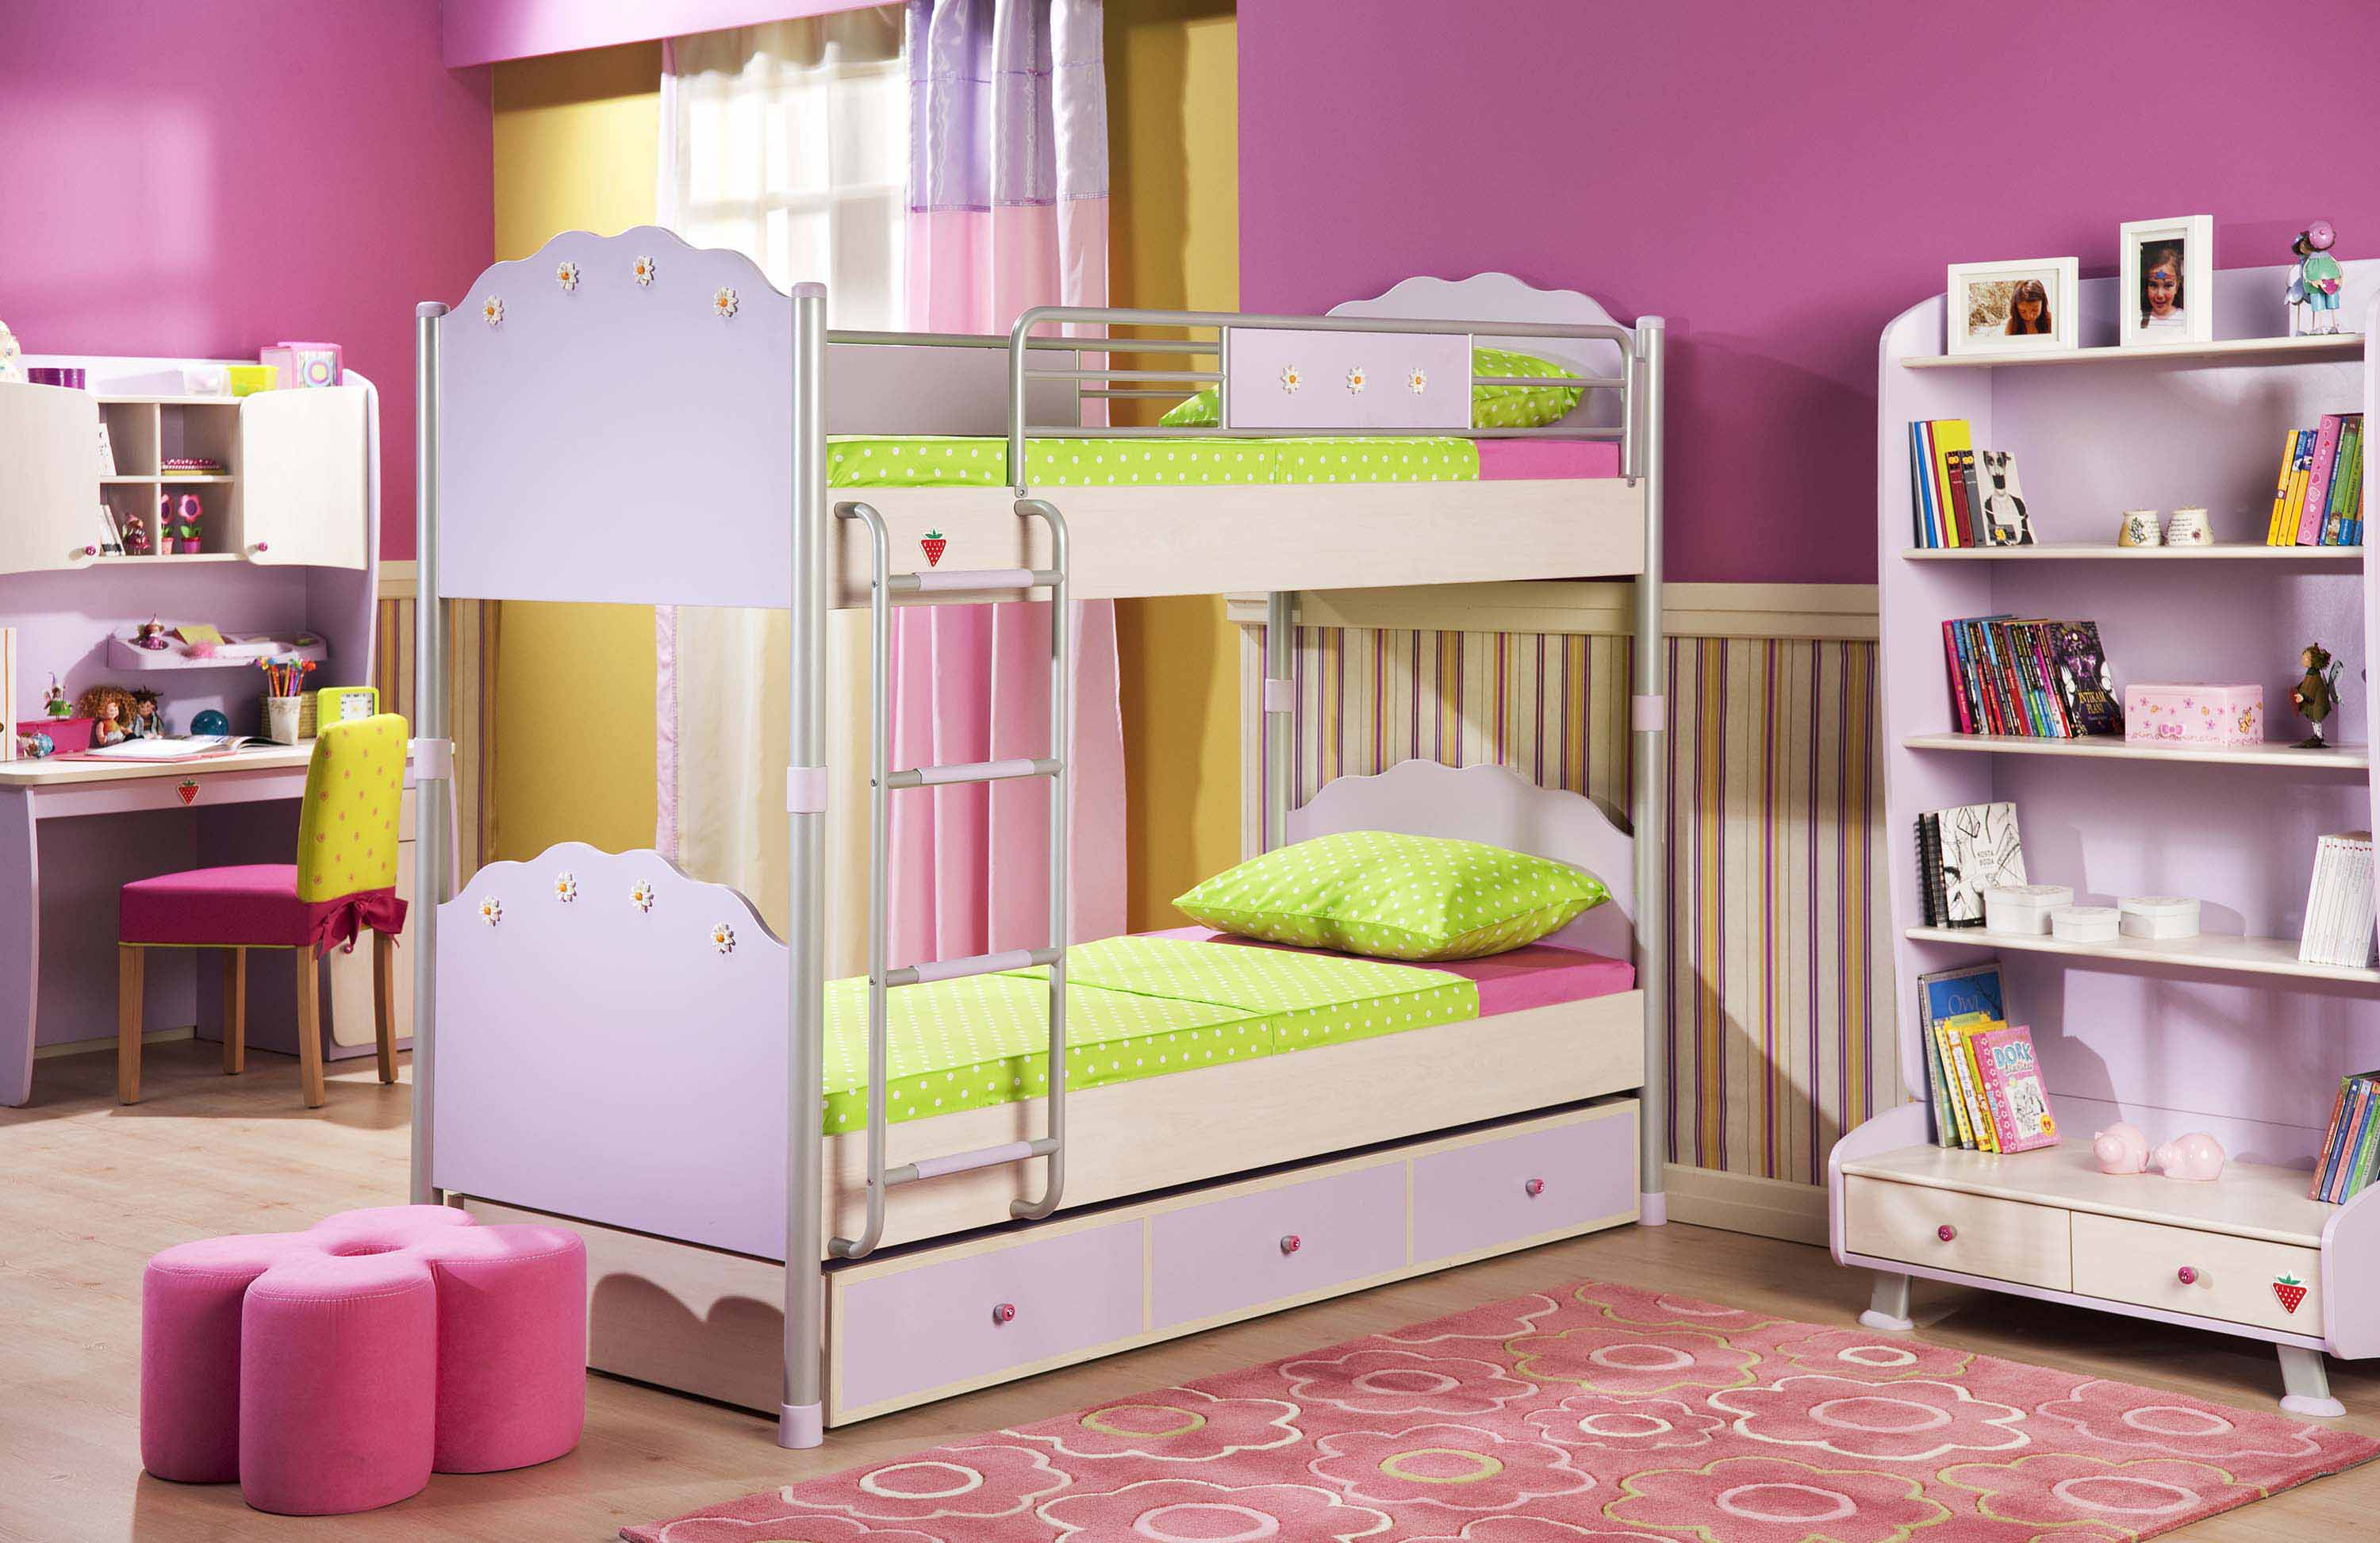 Solid Wood Bedroom Furniture For Kids 20 Tips For Best